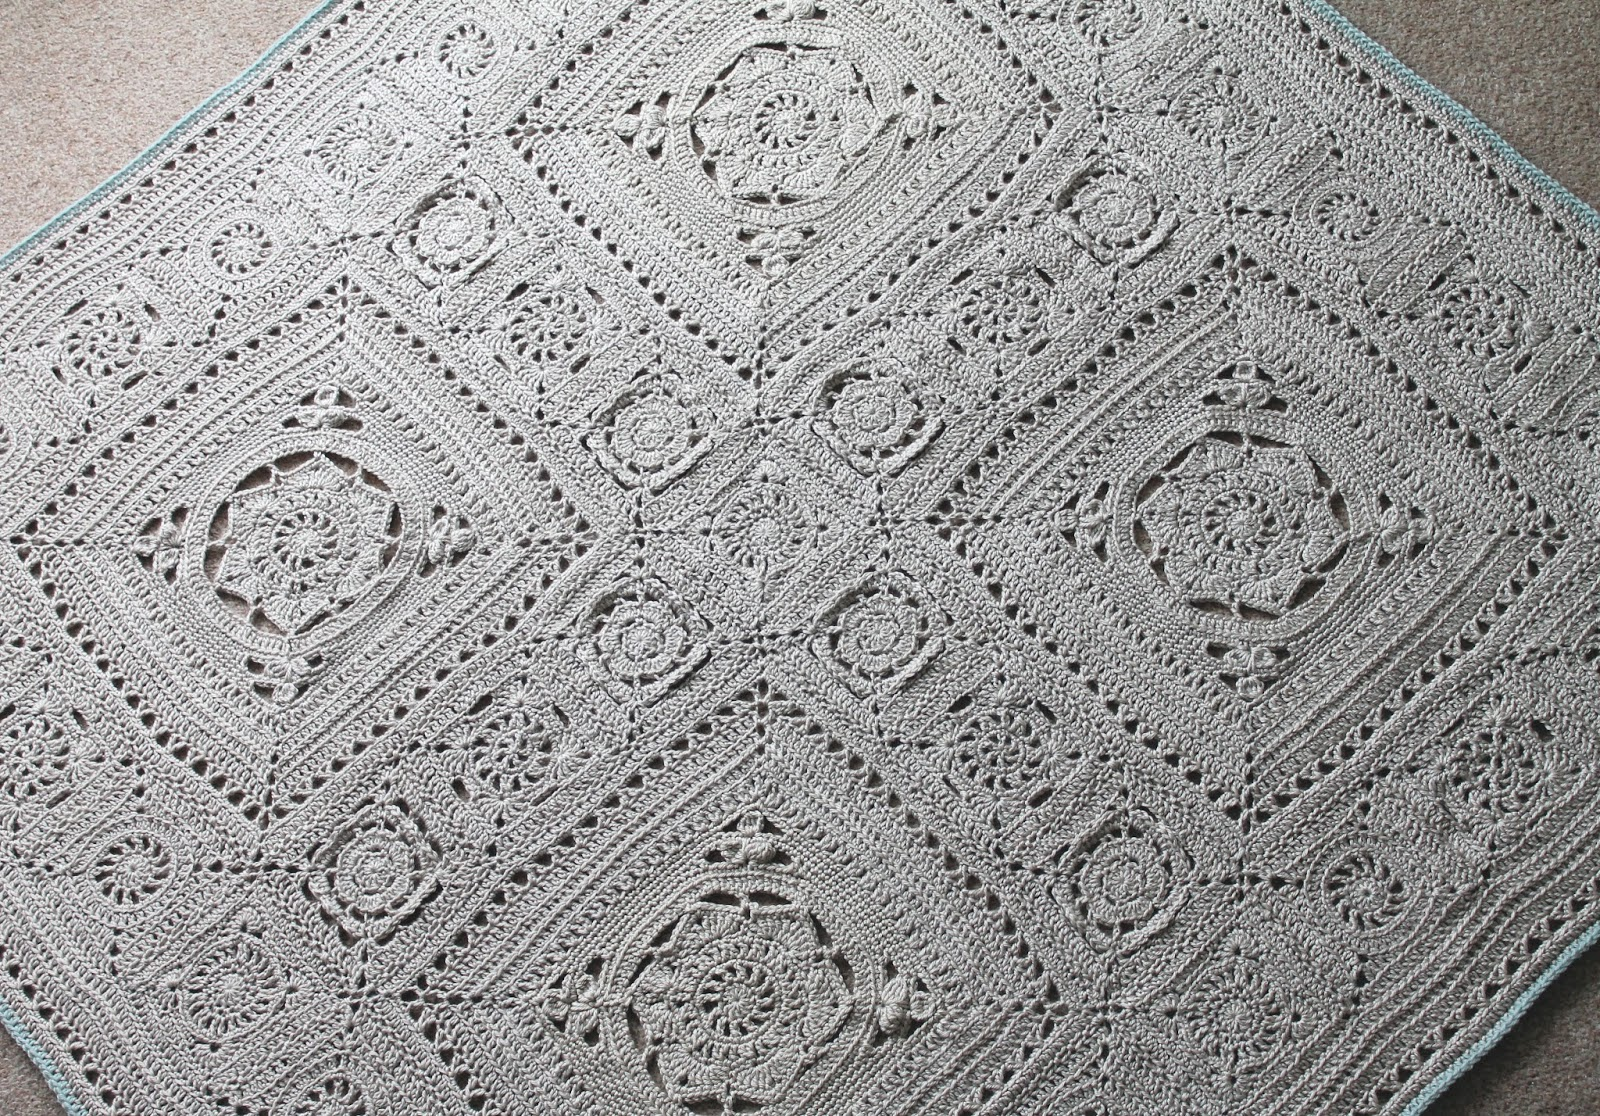 Apphia Blanket Free Crochet Pattern This Cal Was Hosted By Shelley At  Spincushions The Name Of